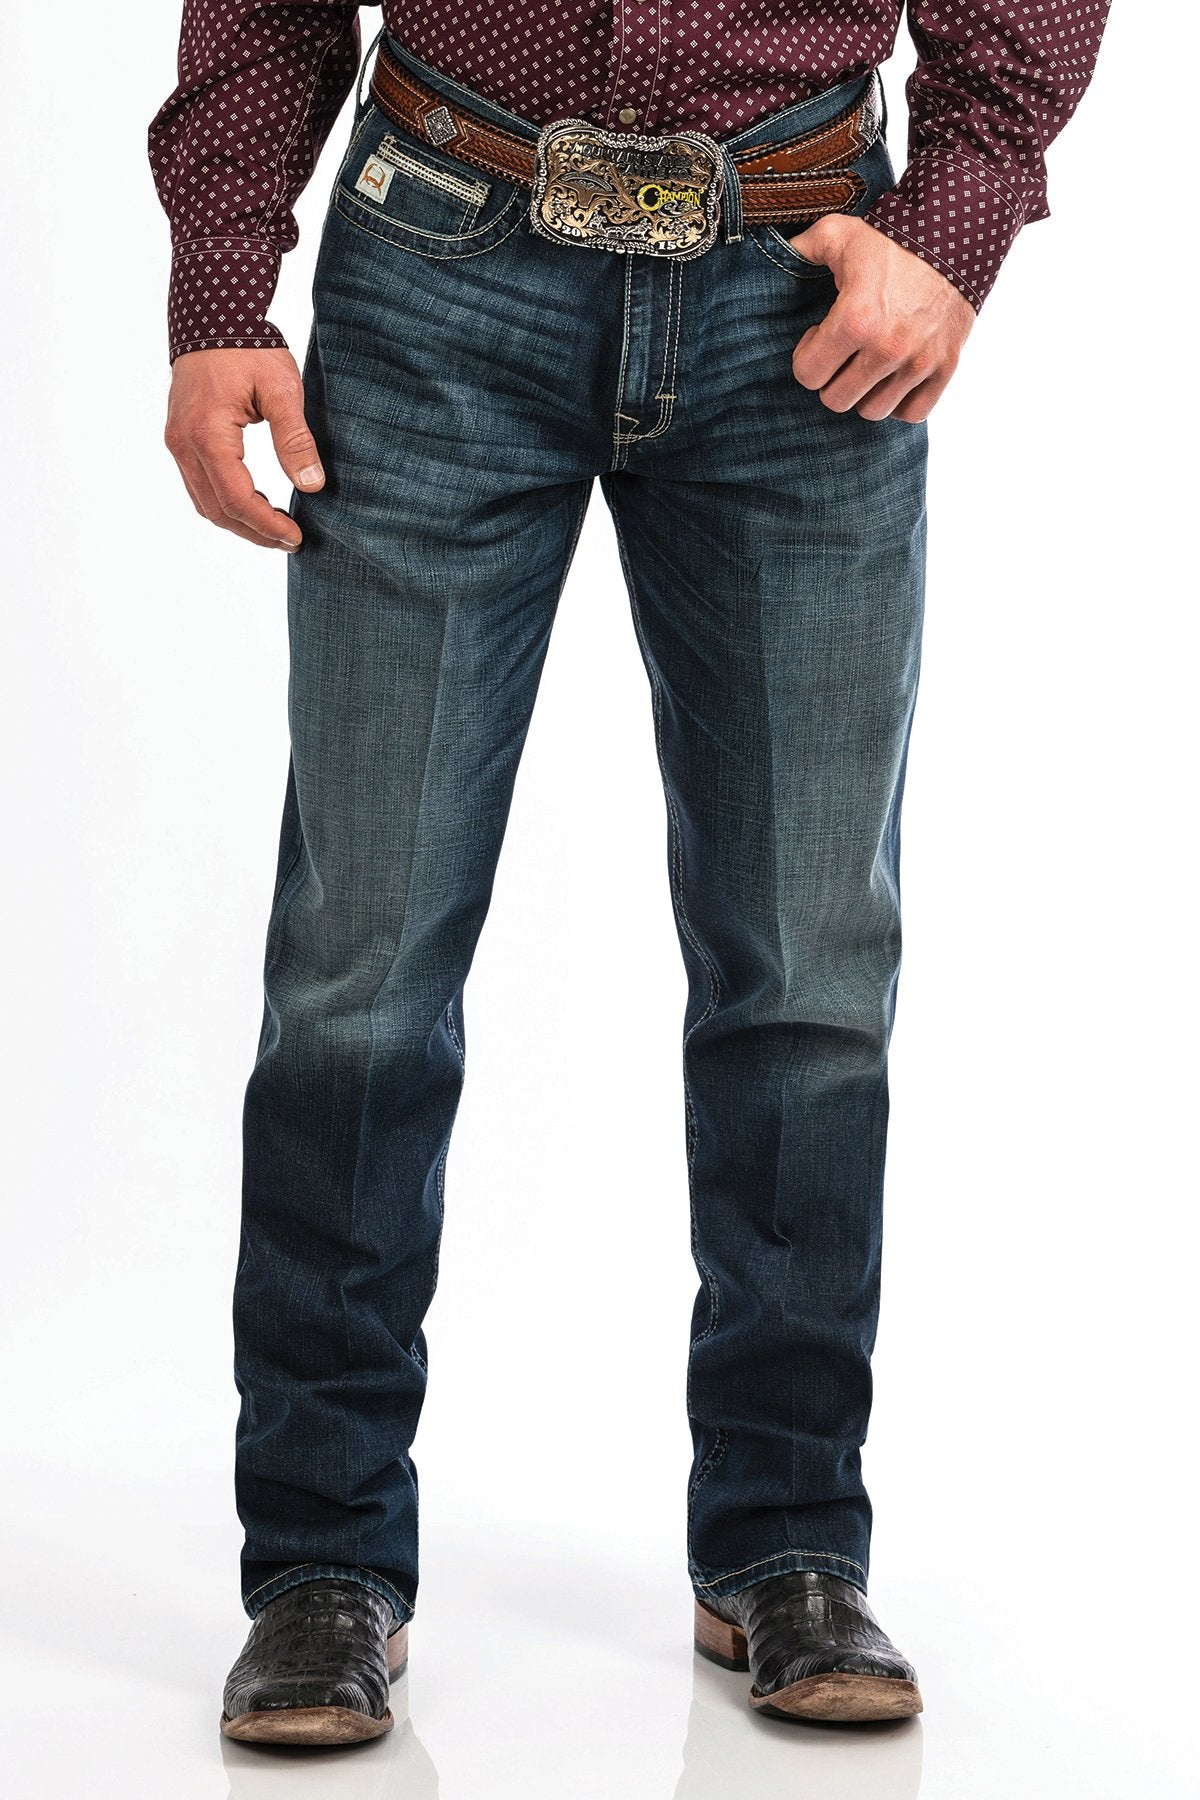 Mens Sawyer jean